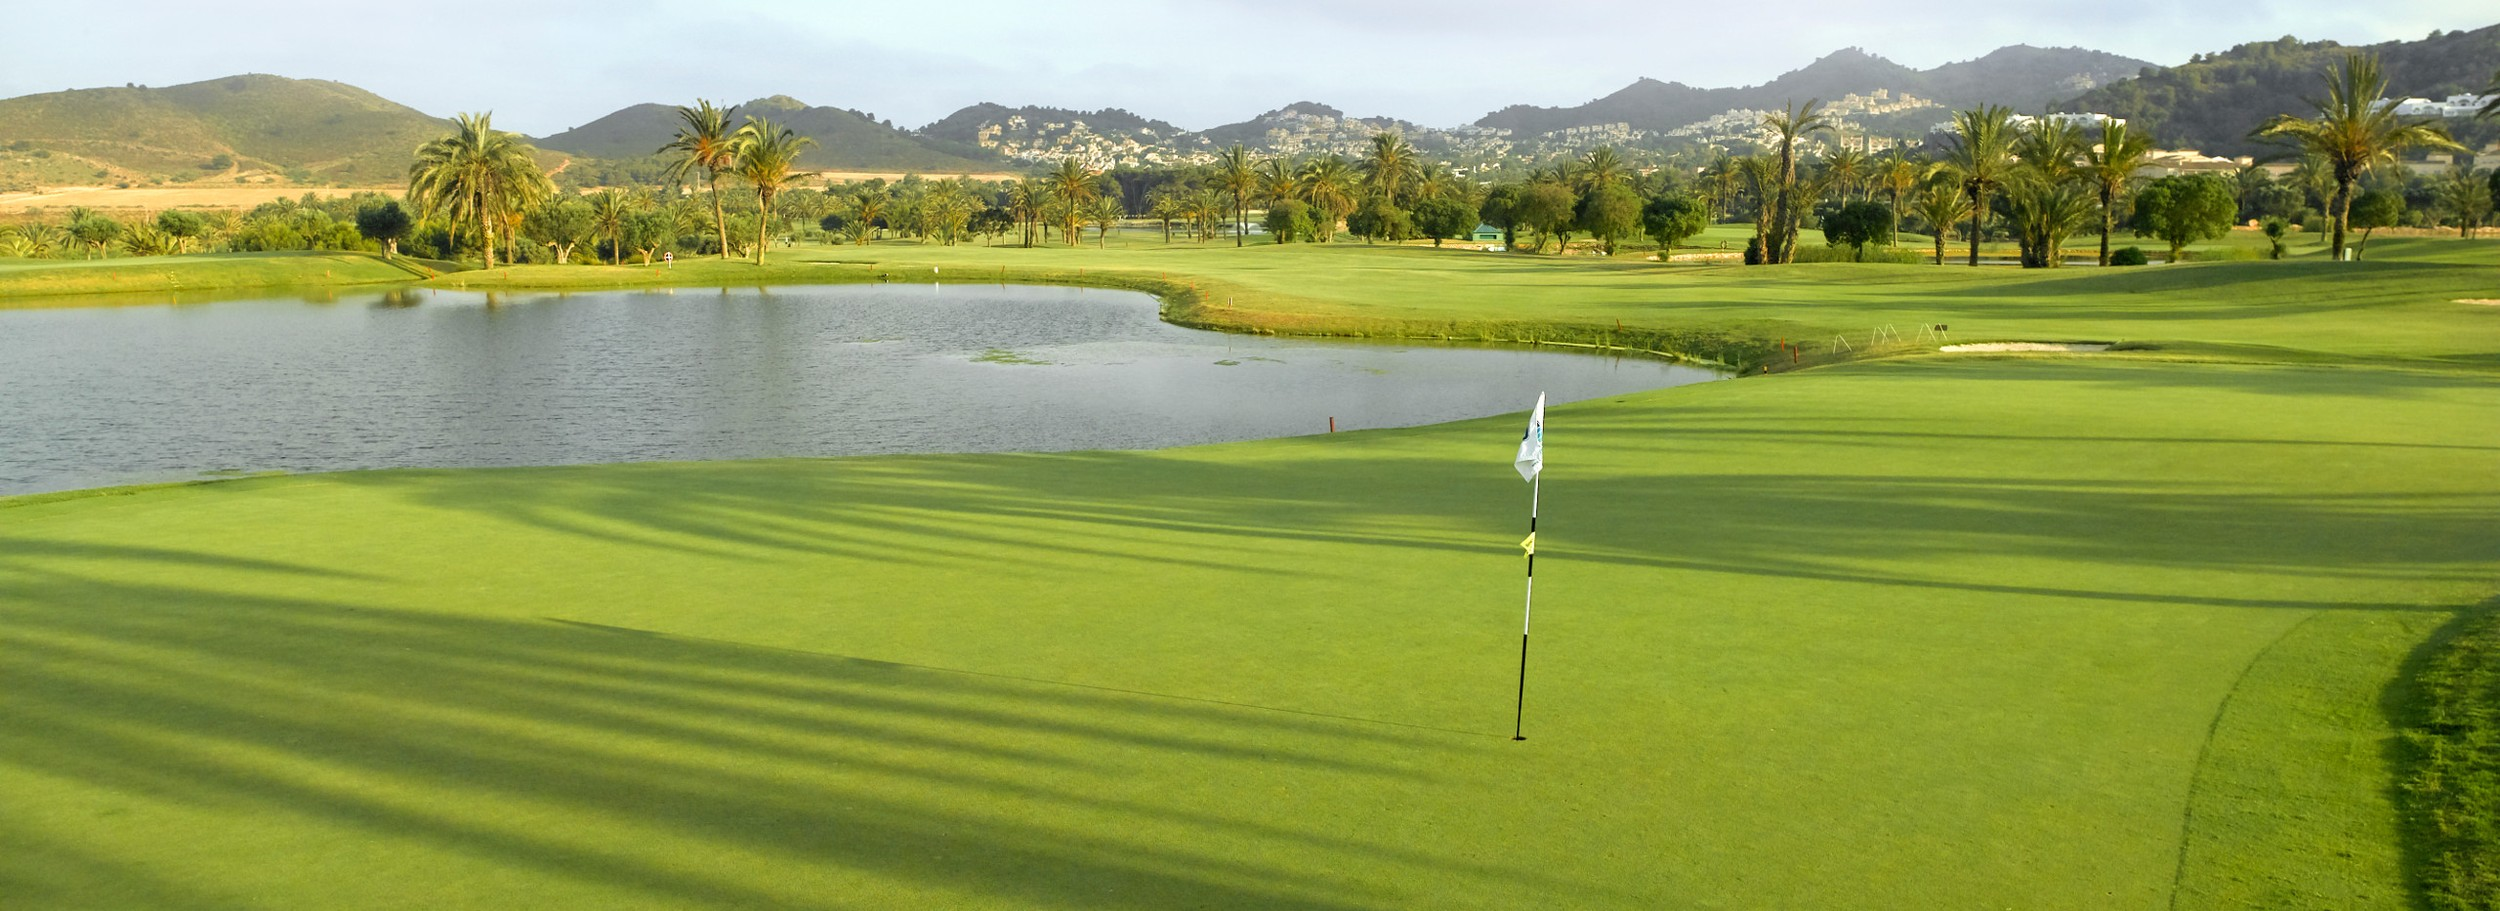 La Manga South Course, Spain